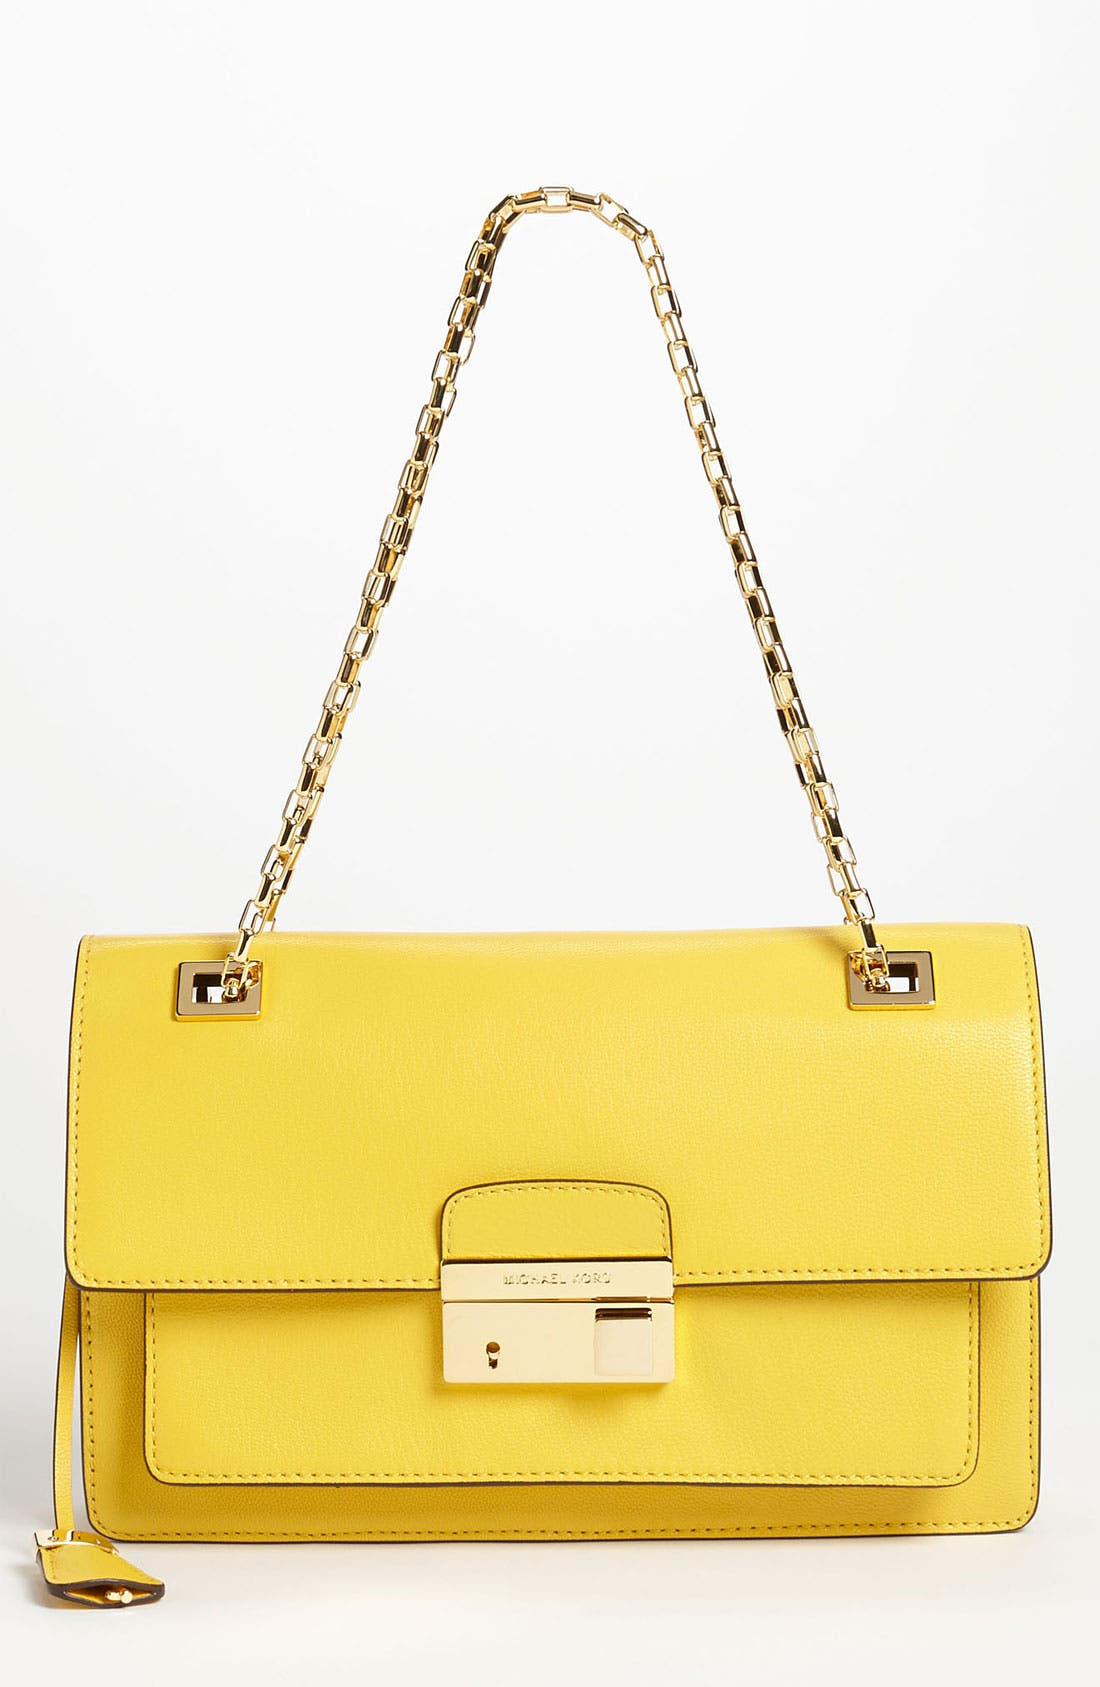 Main Image - Michael Kors 'Gia' Shoulder Bag